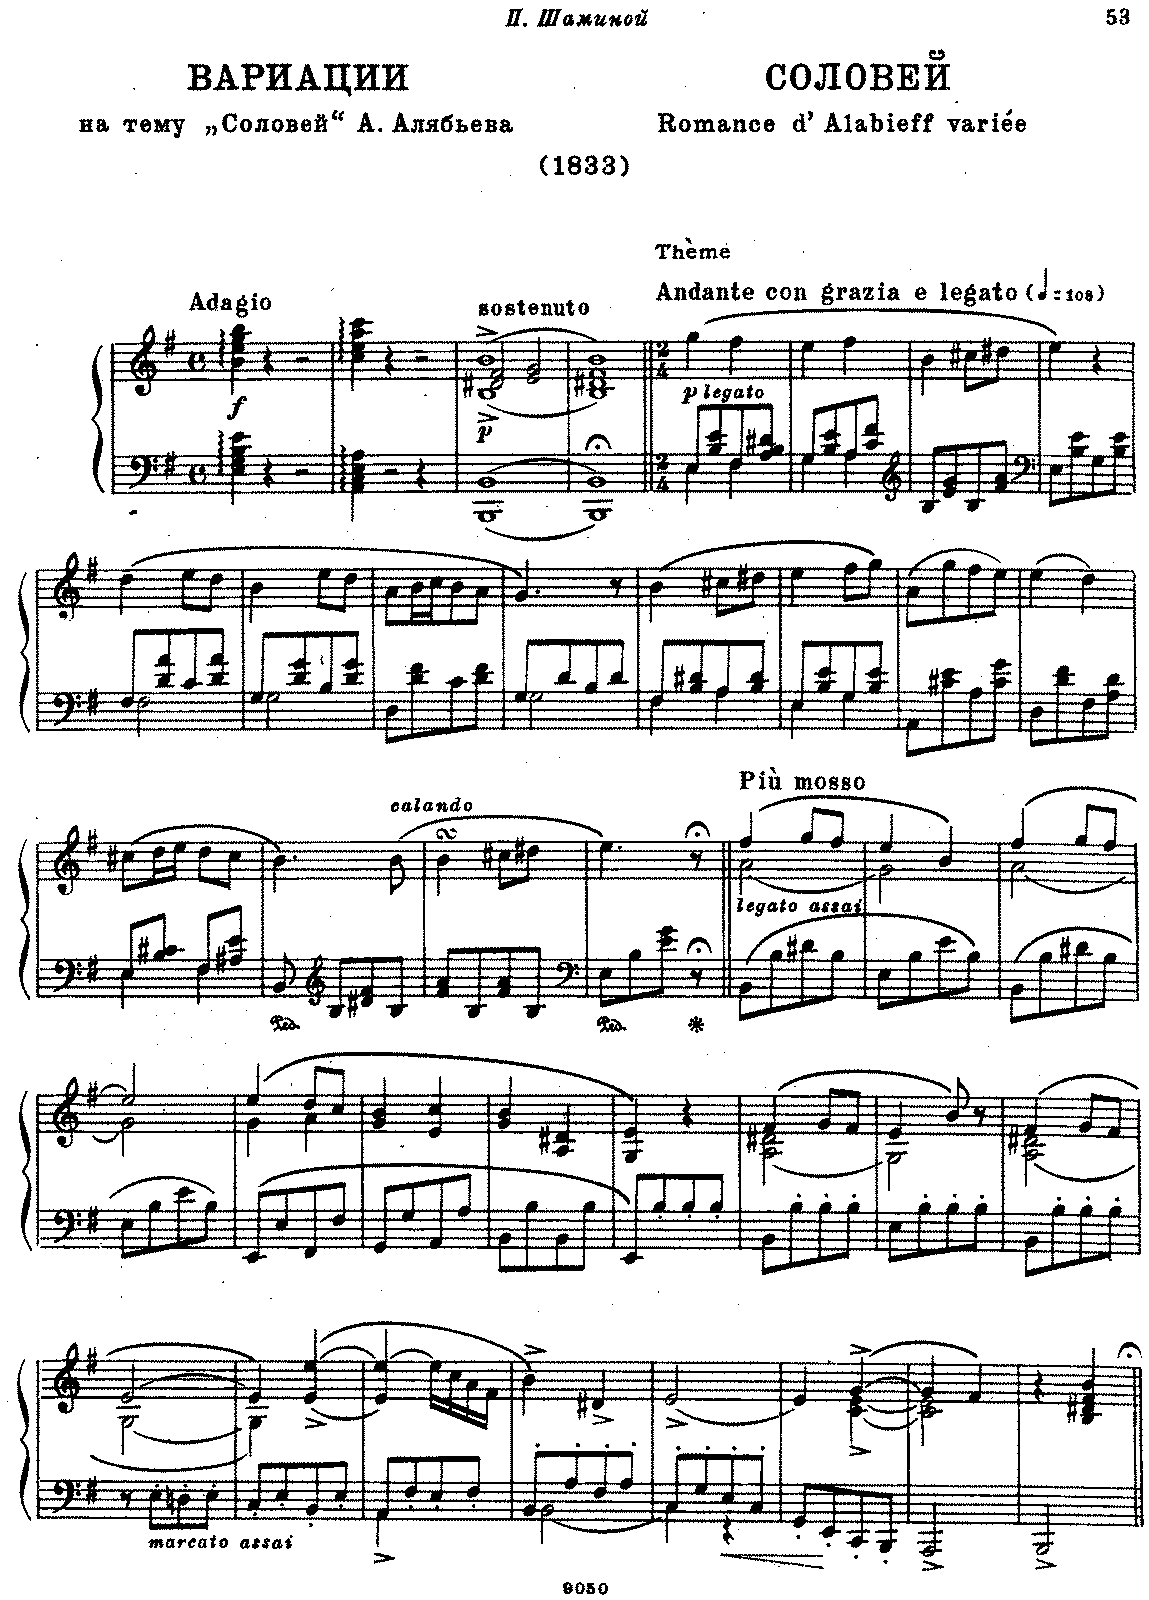 Glinka - Variations in E minor on Aljabjew's Romance Die Nachtigall.pdf